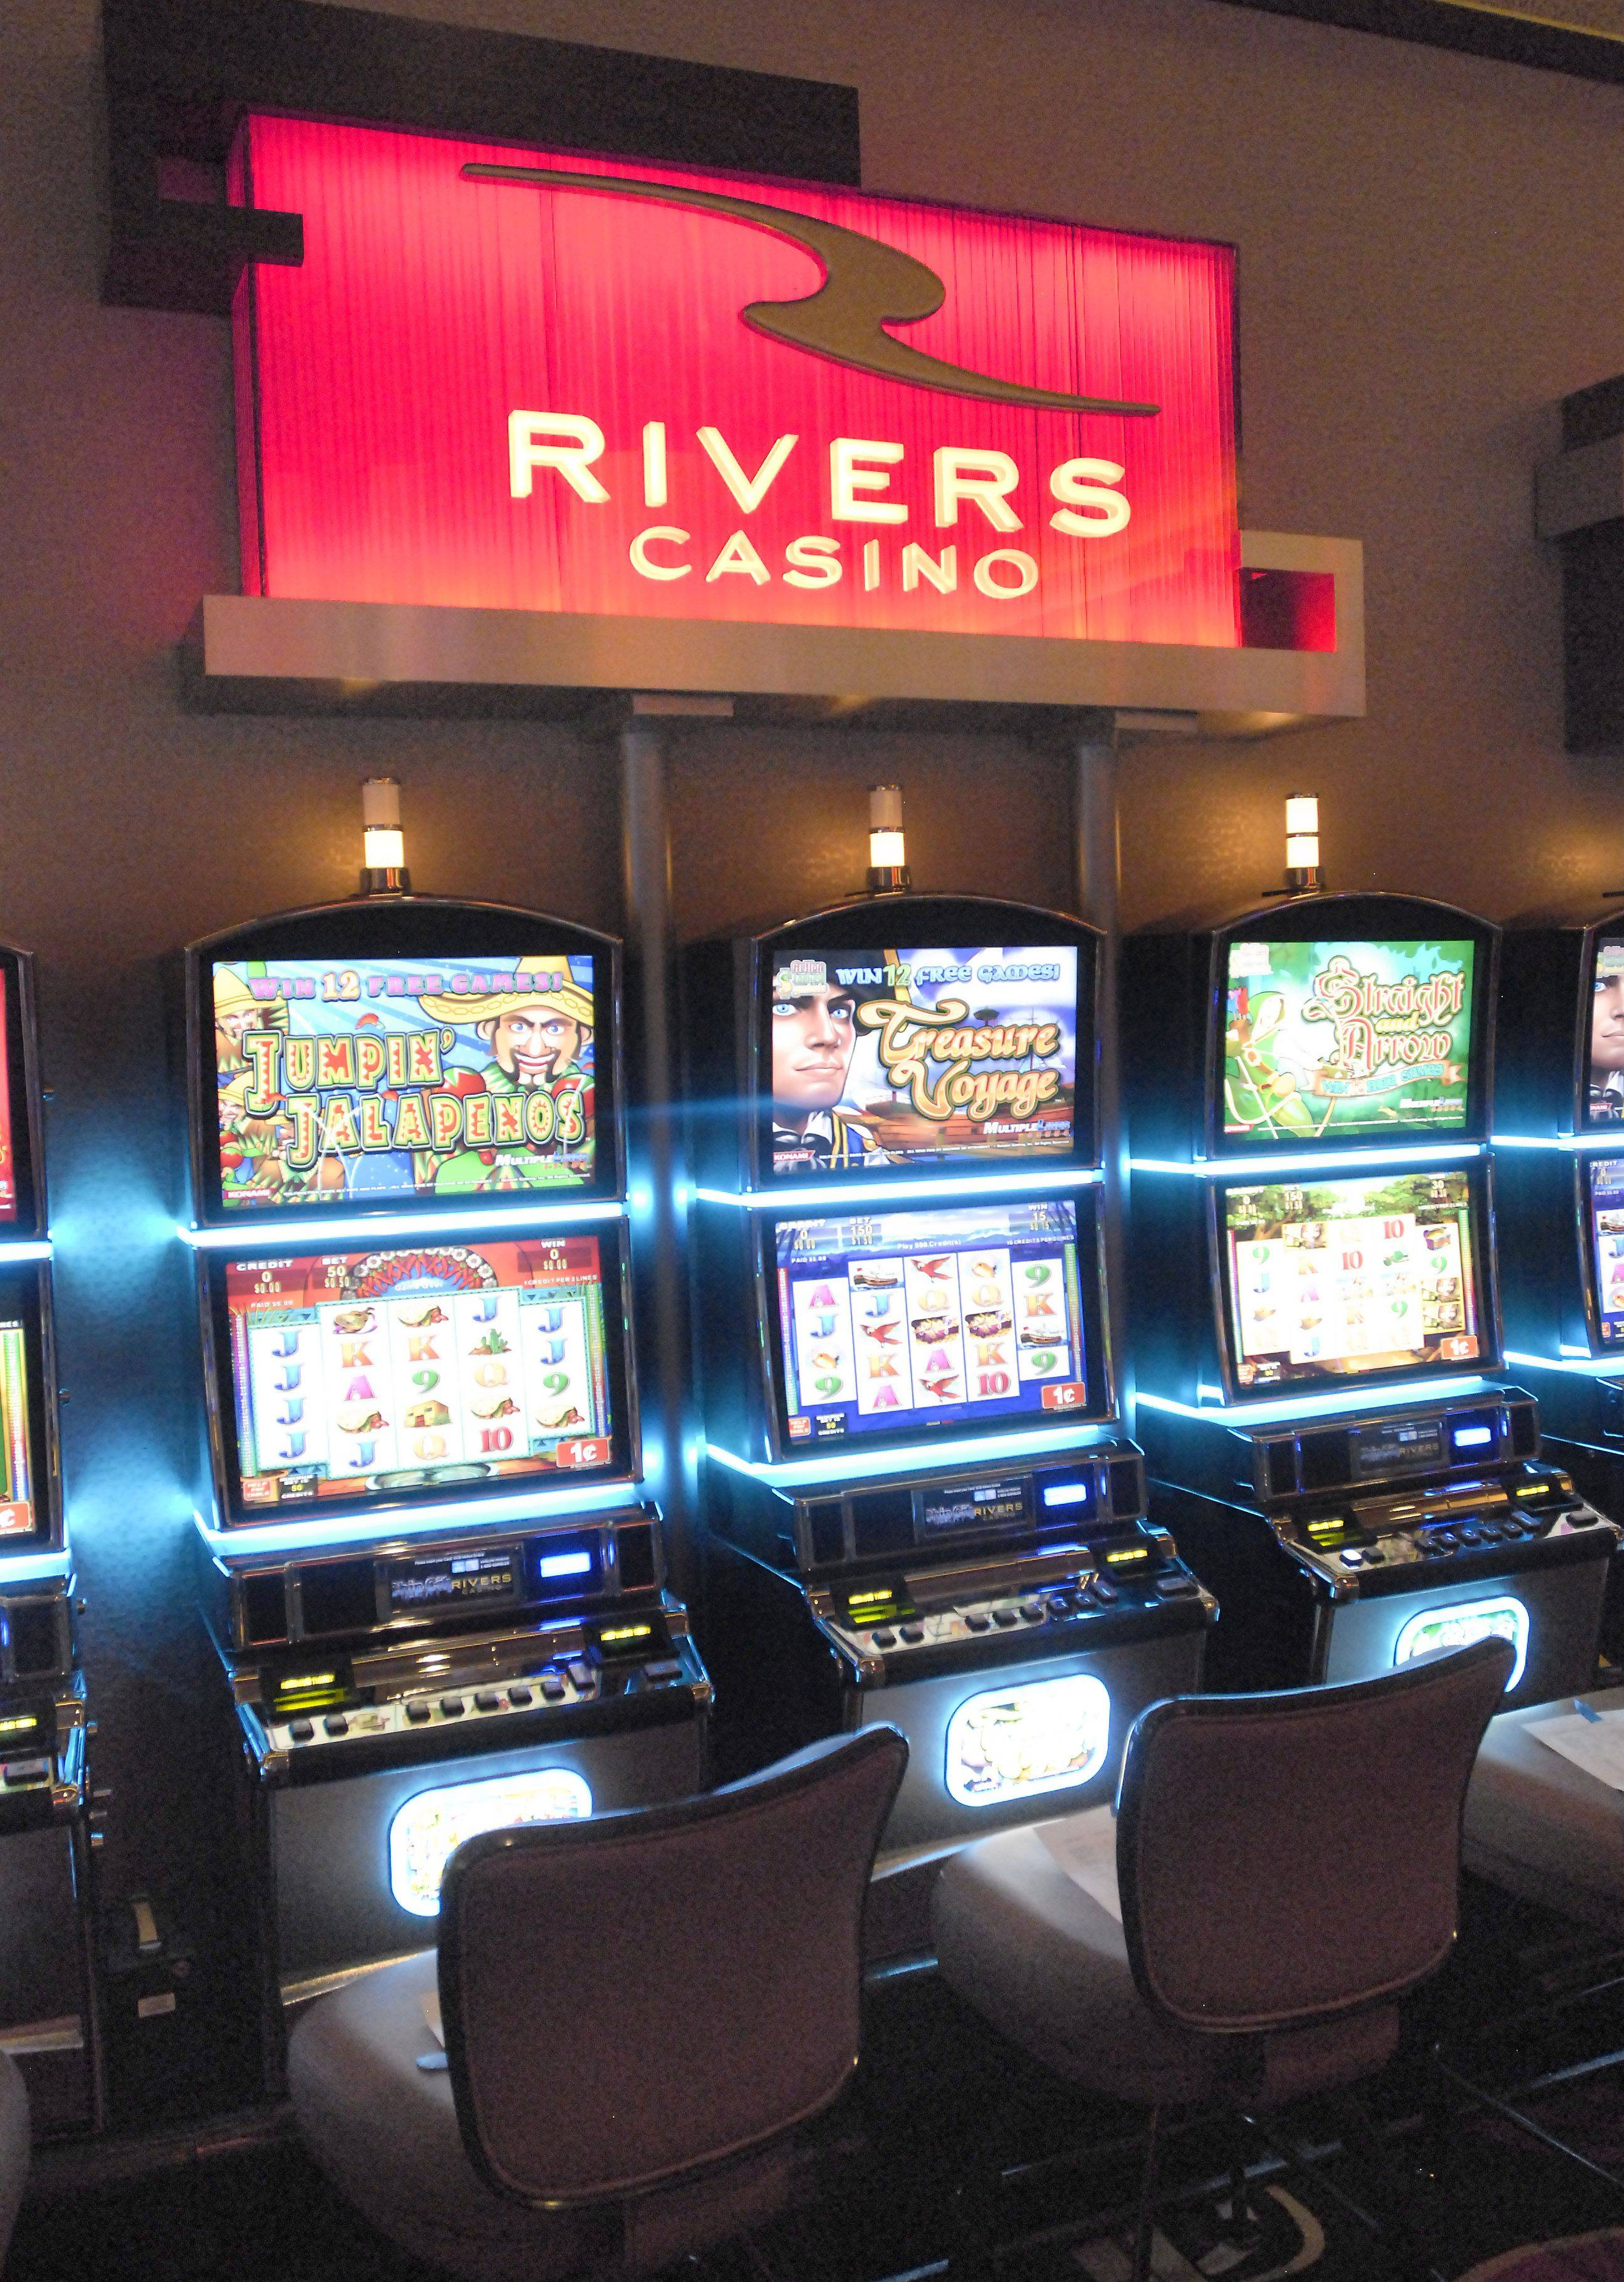 Rivers Casino in Des Plaines took in more than $177 million in receipts after opening in July, according to state gambling numbers released Monday.